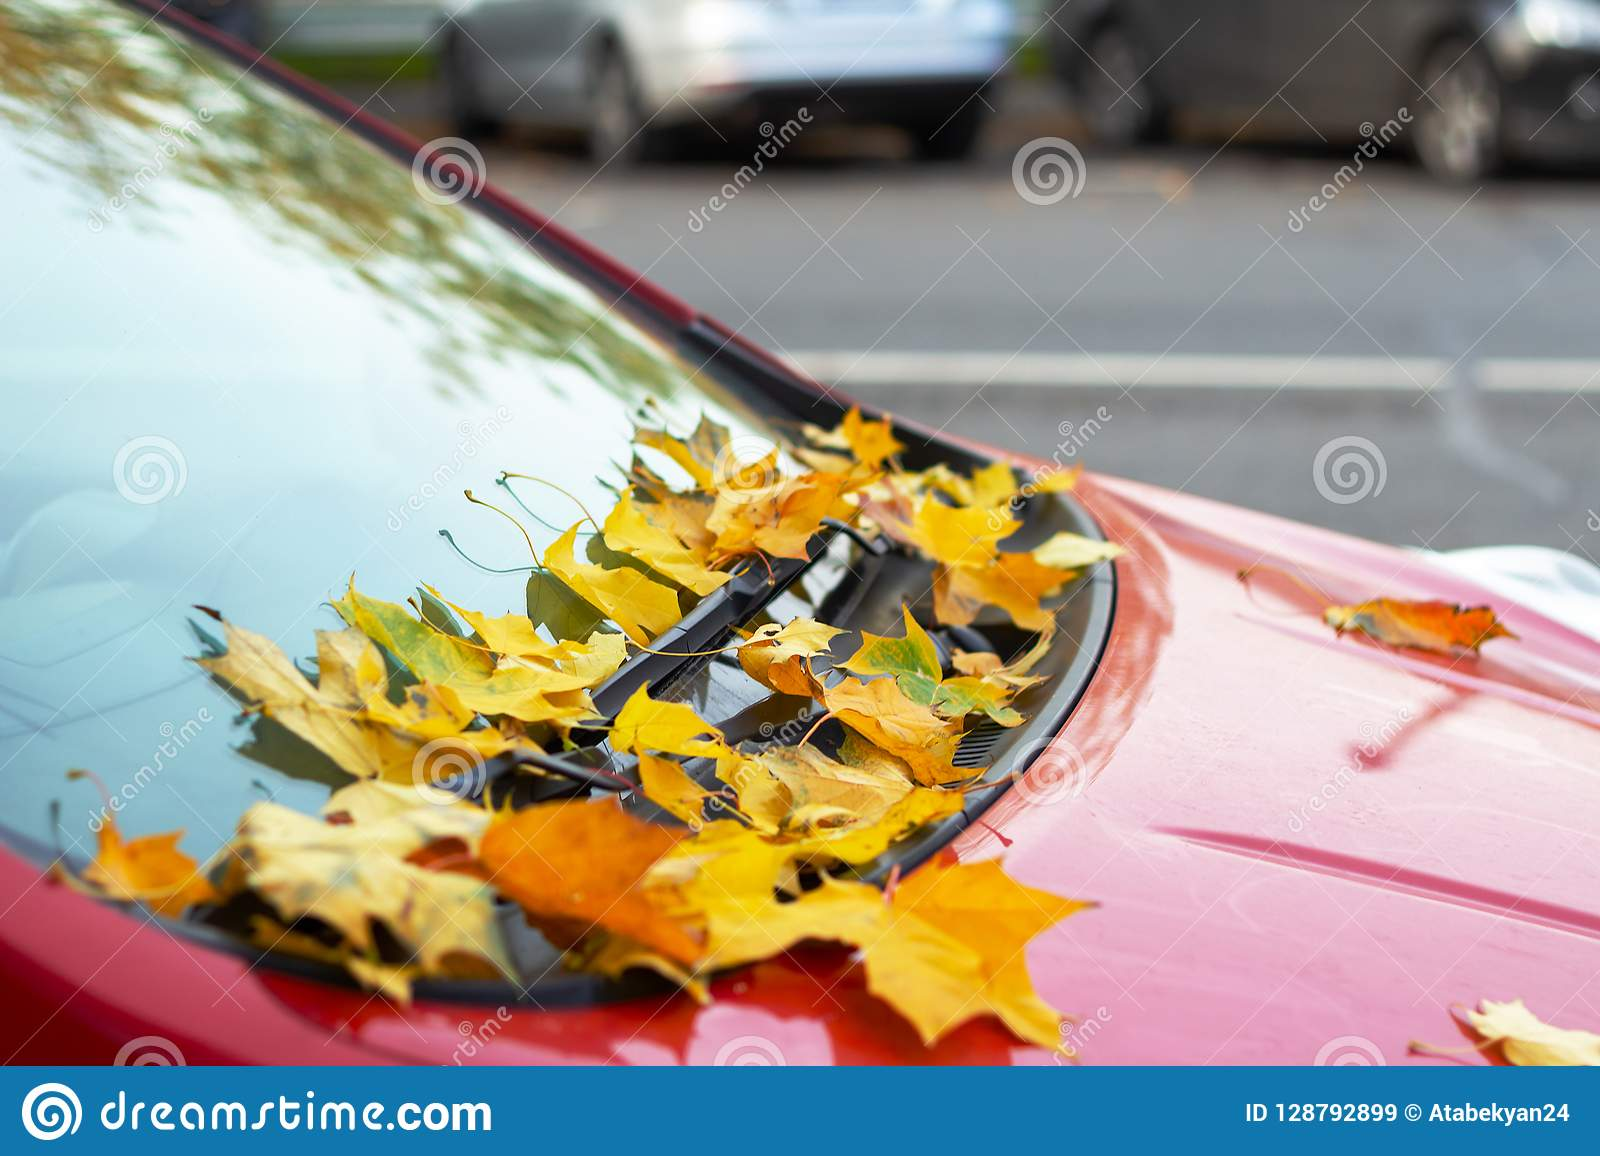 Yellow leaves on the red car